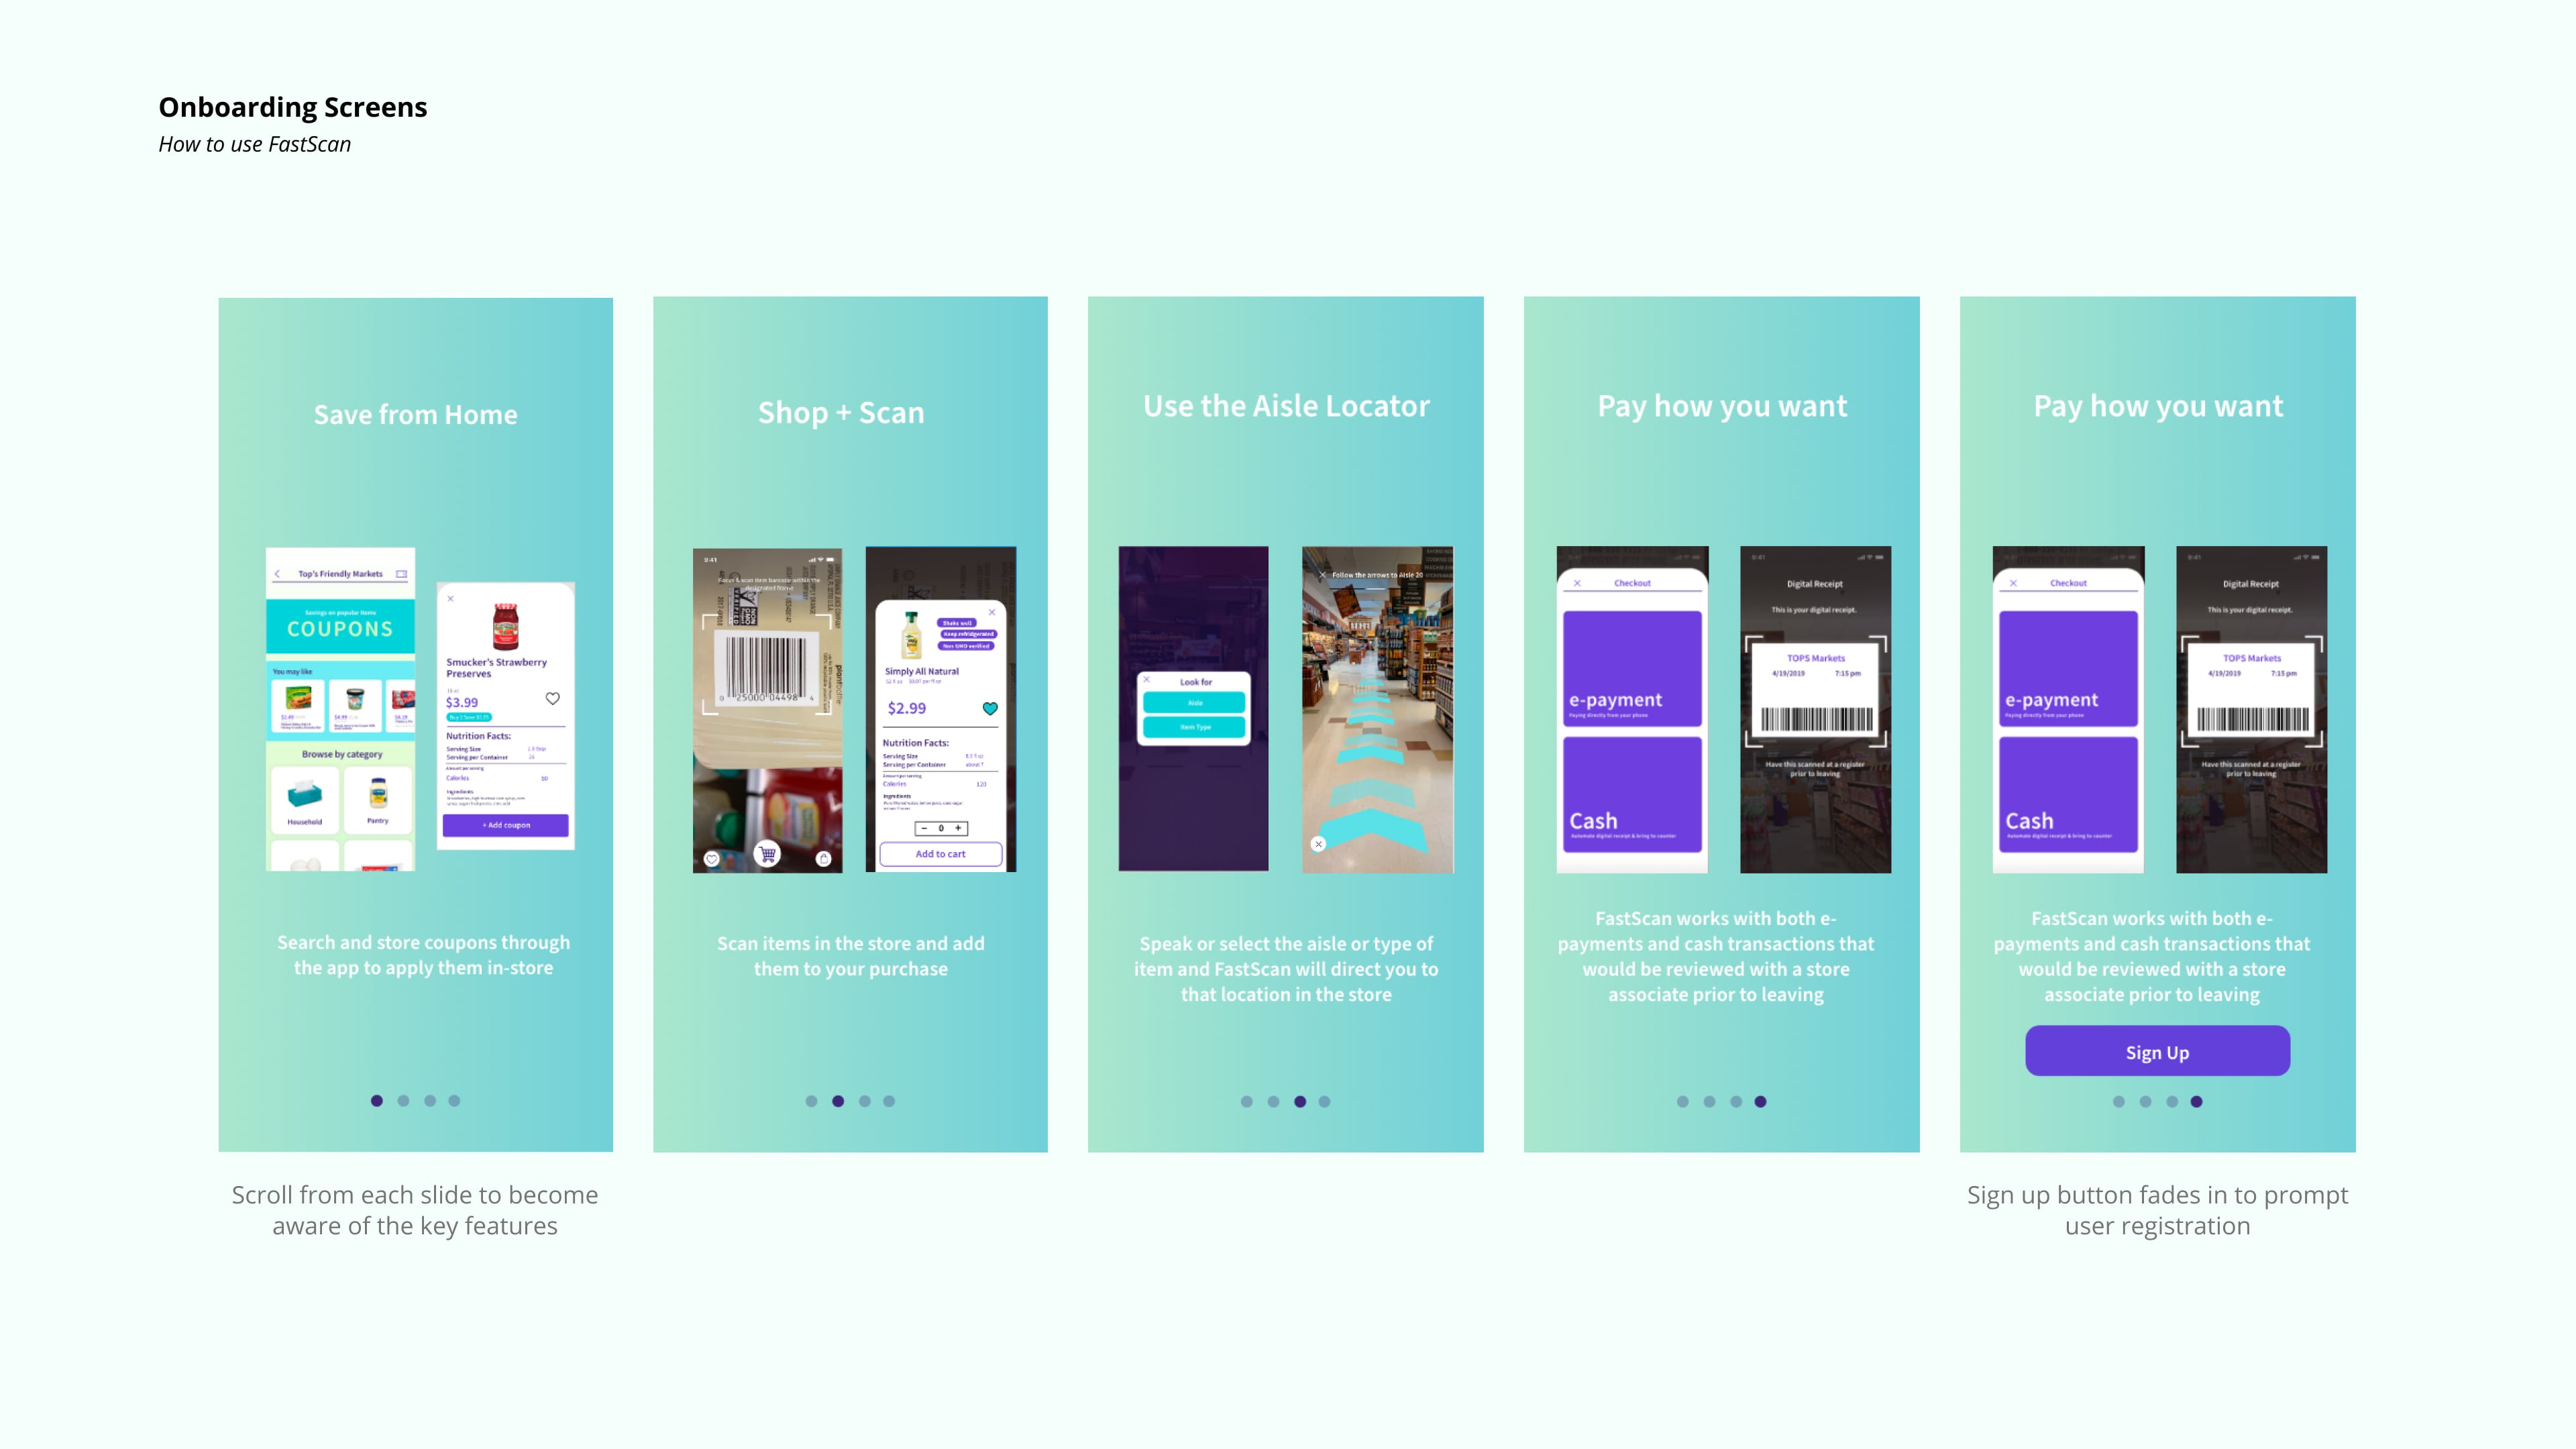 Onboarding screens with descriptions